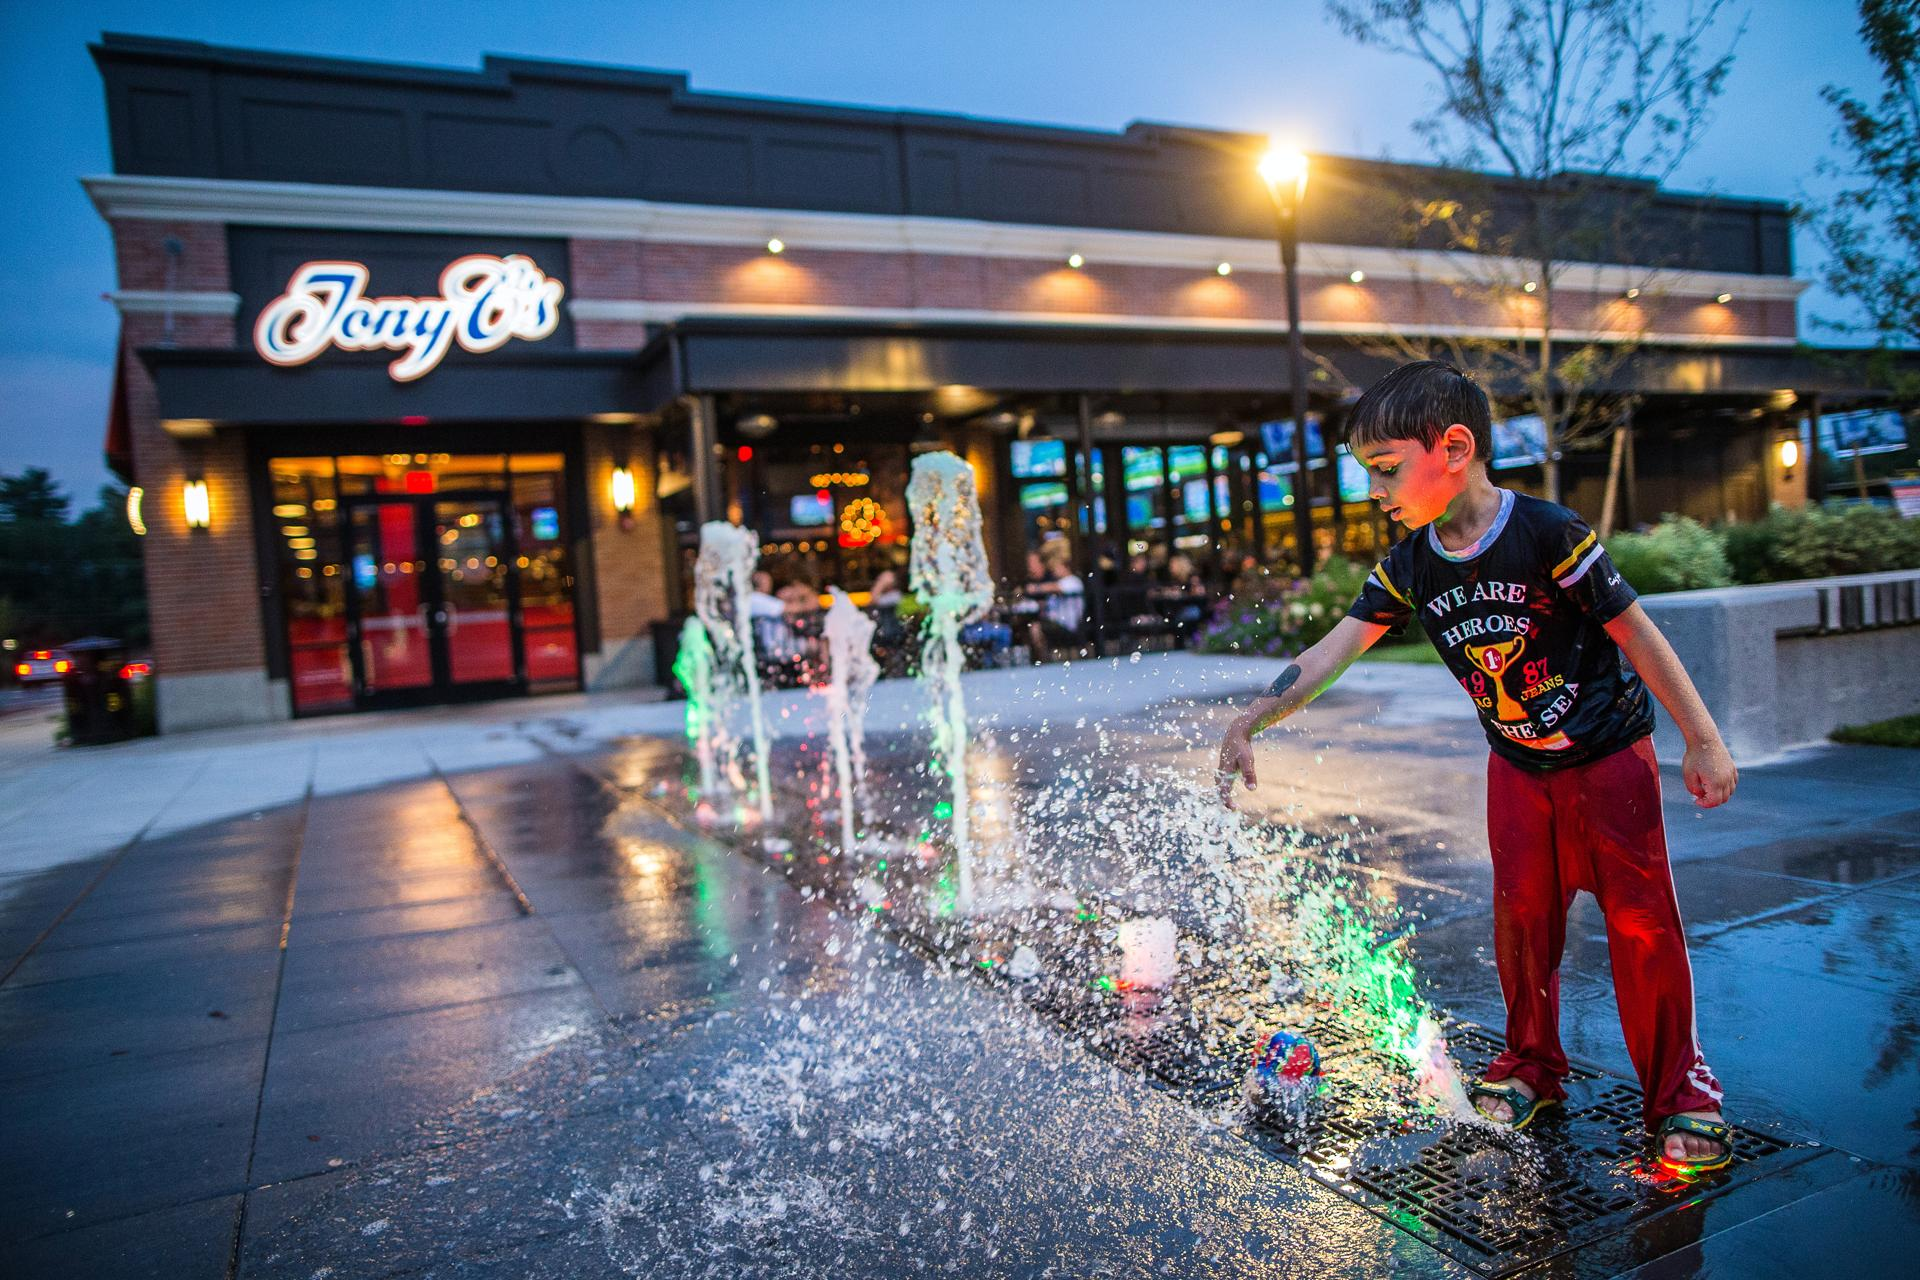 Kartik Jay, 4, of India, played in a fountain outside of Tony C's.